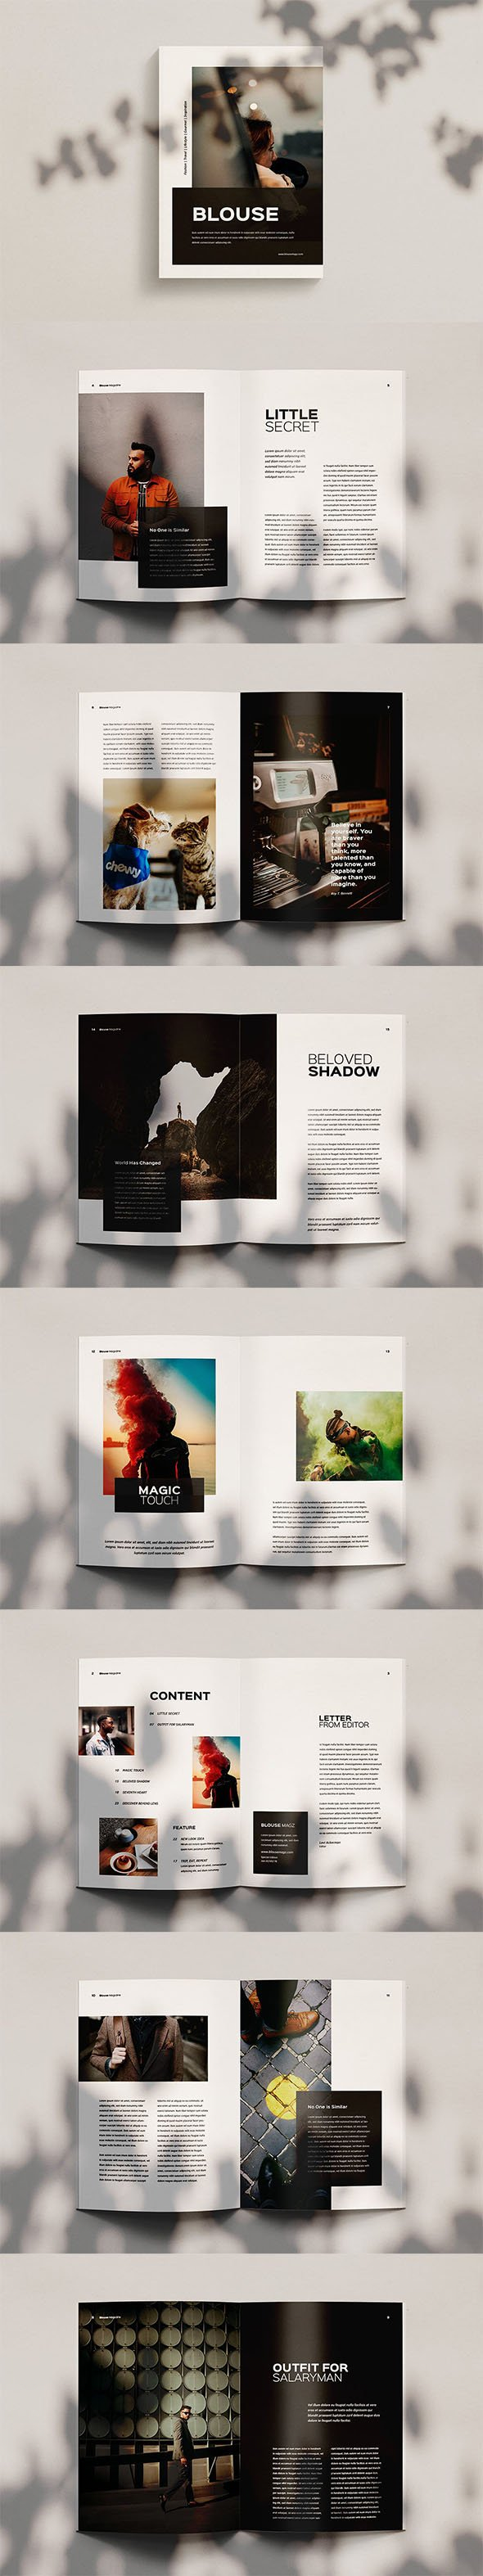 Blouse - Magazine Template Indesign